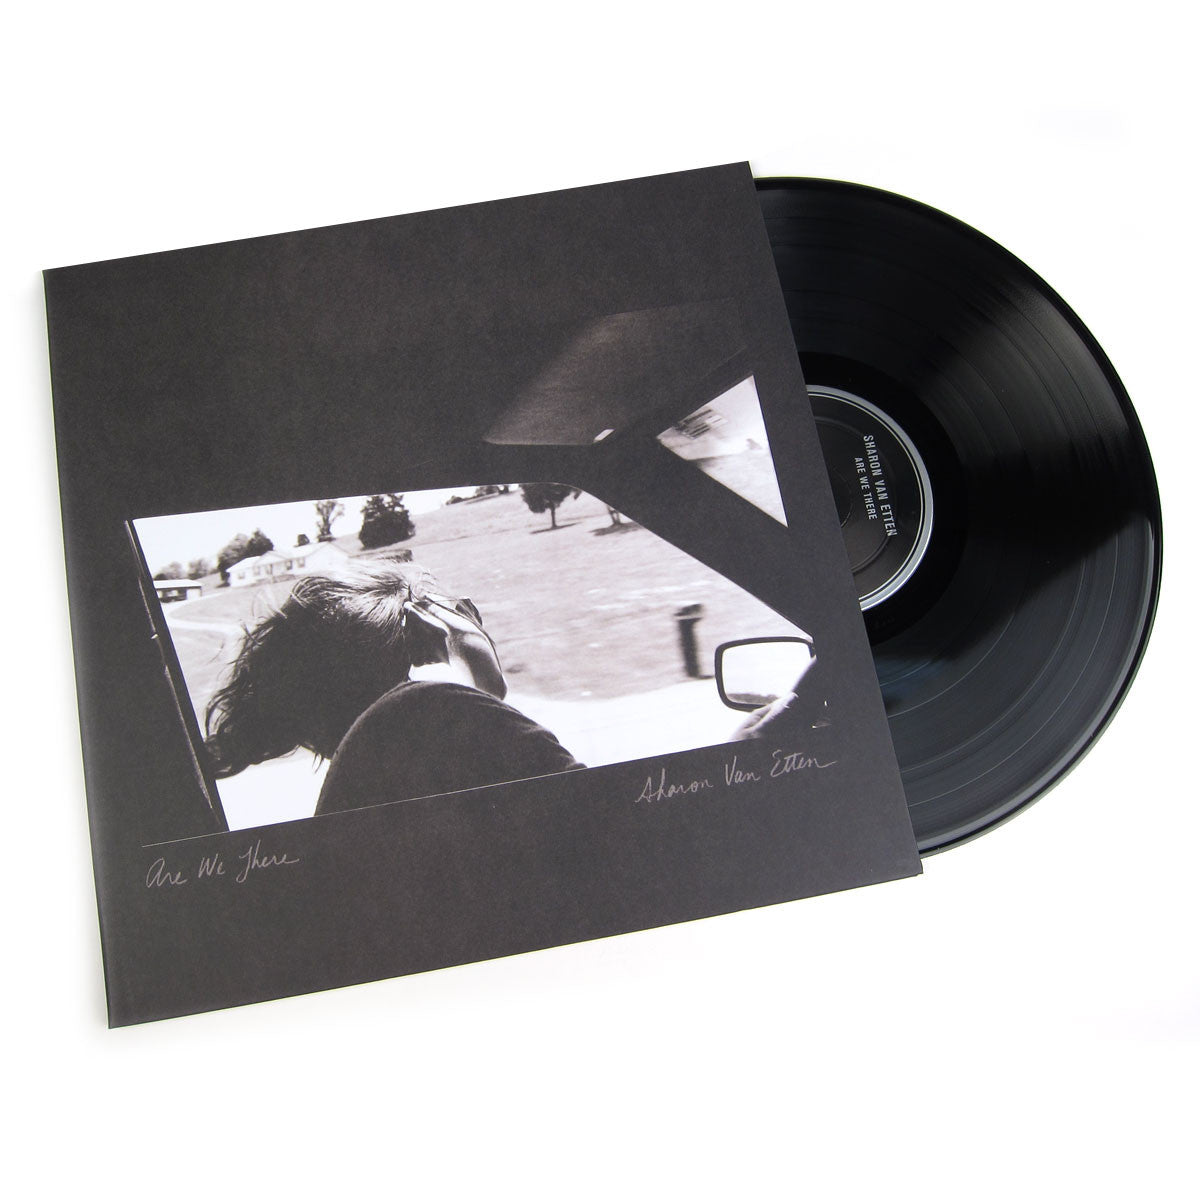 Sharon Van Etten: Are We There Vinyl LP